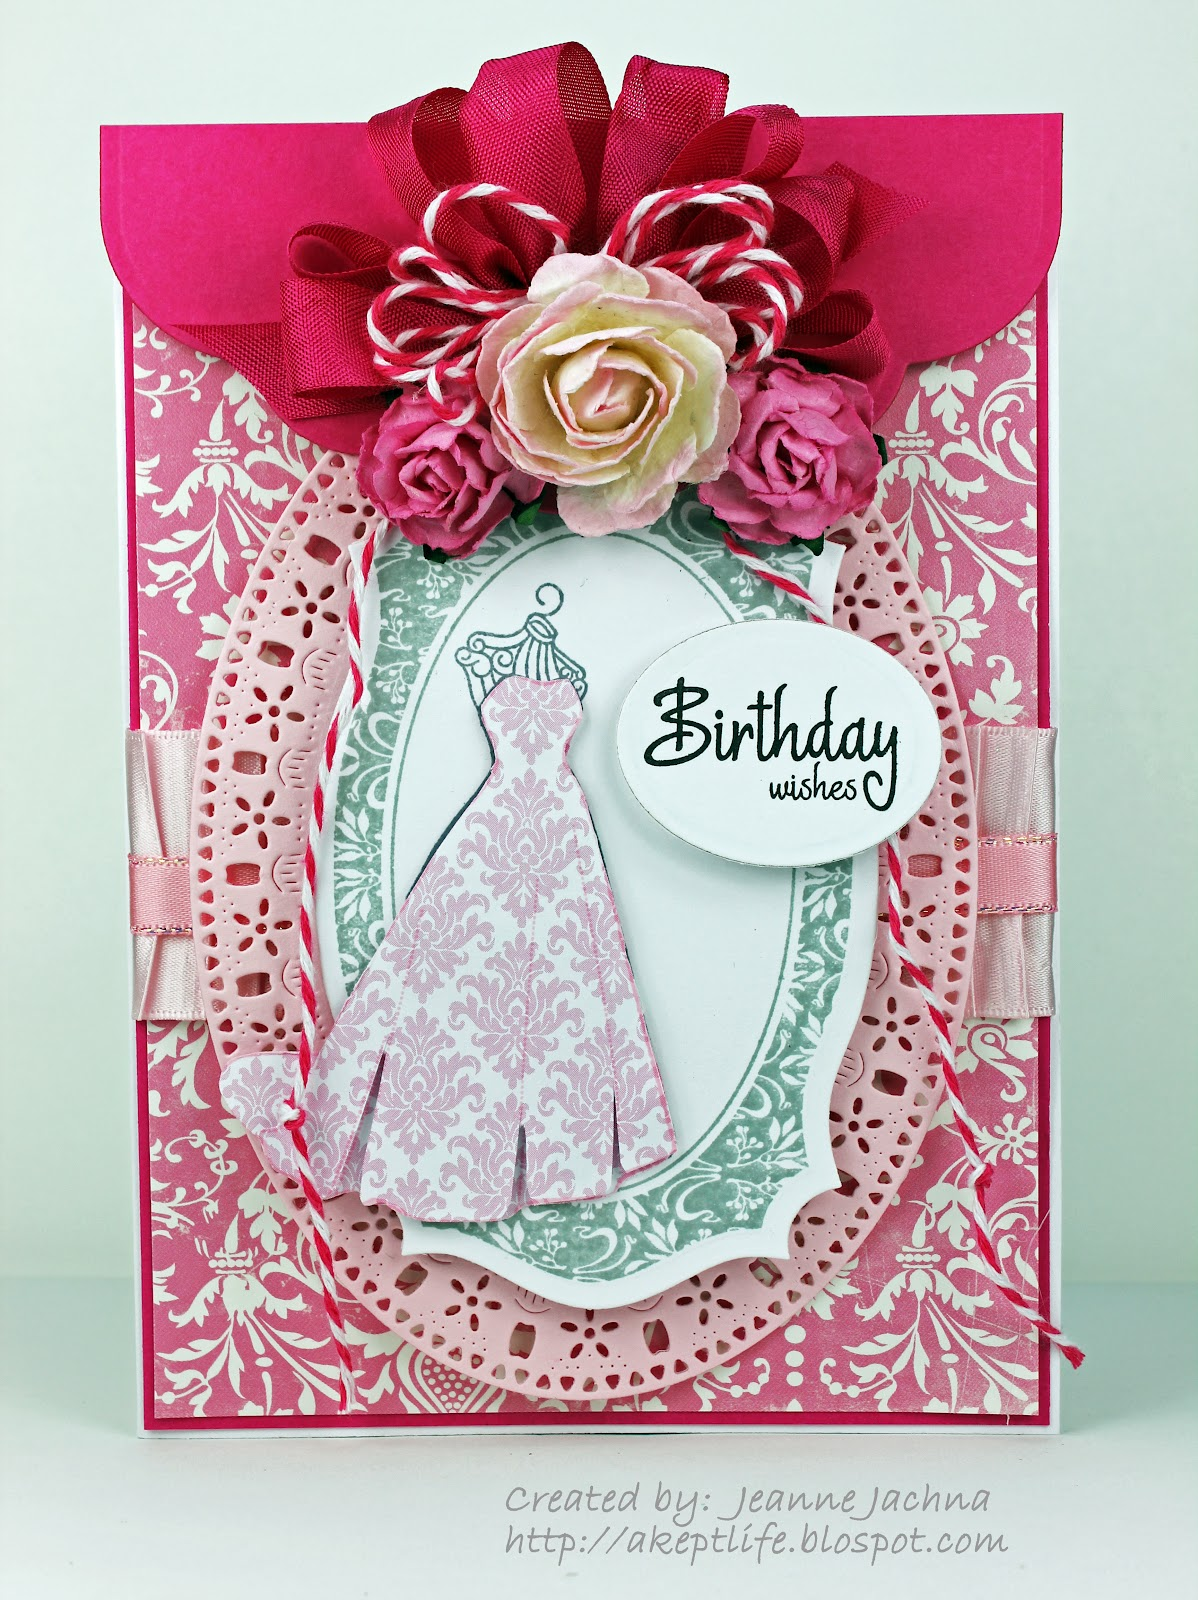 Happy Sweet 16 To Dylan S Candy Bar: A Kept Life: Happy Birthday Sweet 16